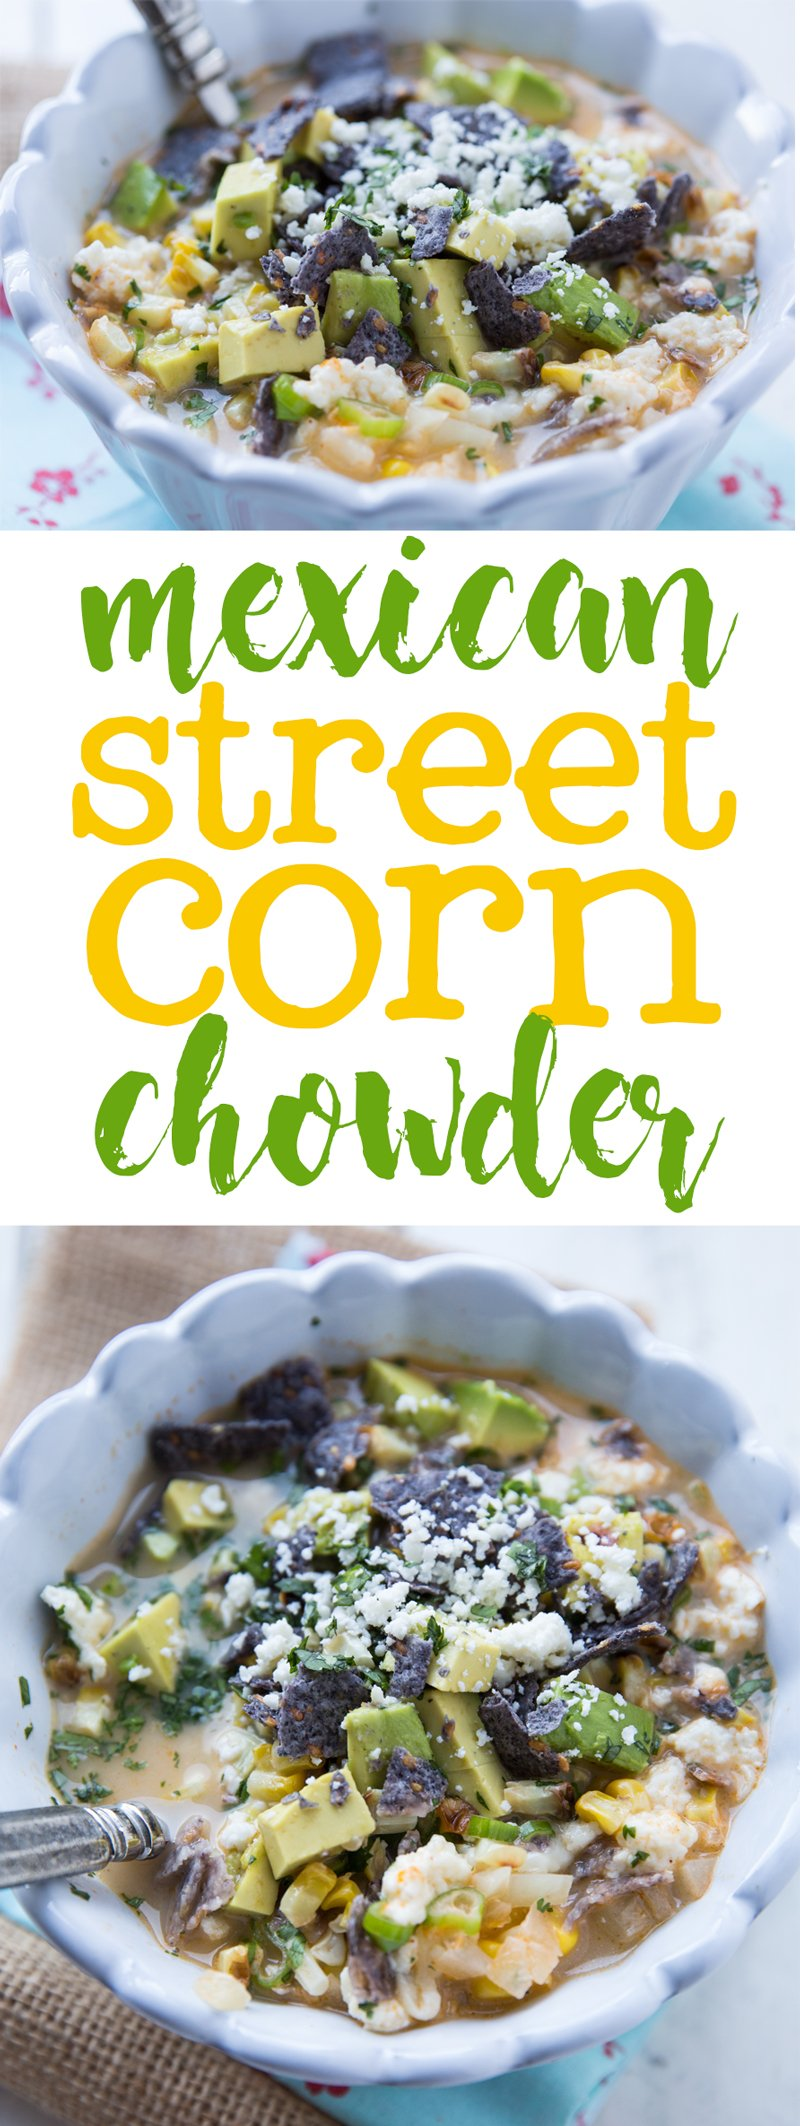 Mexican street corn chowder | Summer soup recipe